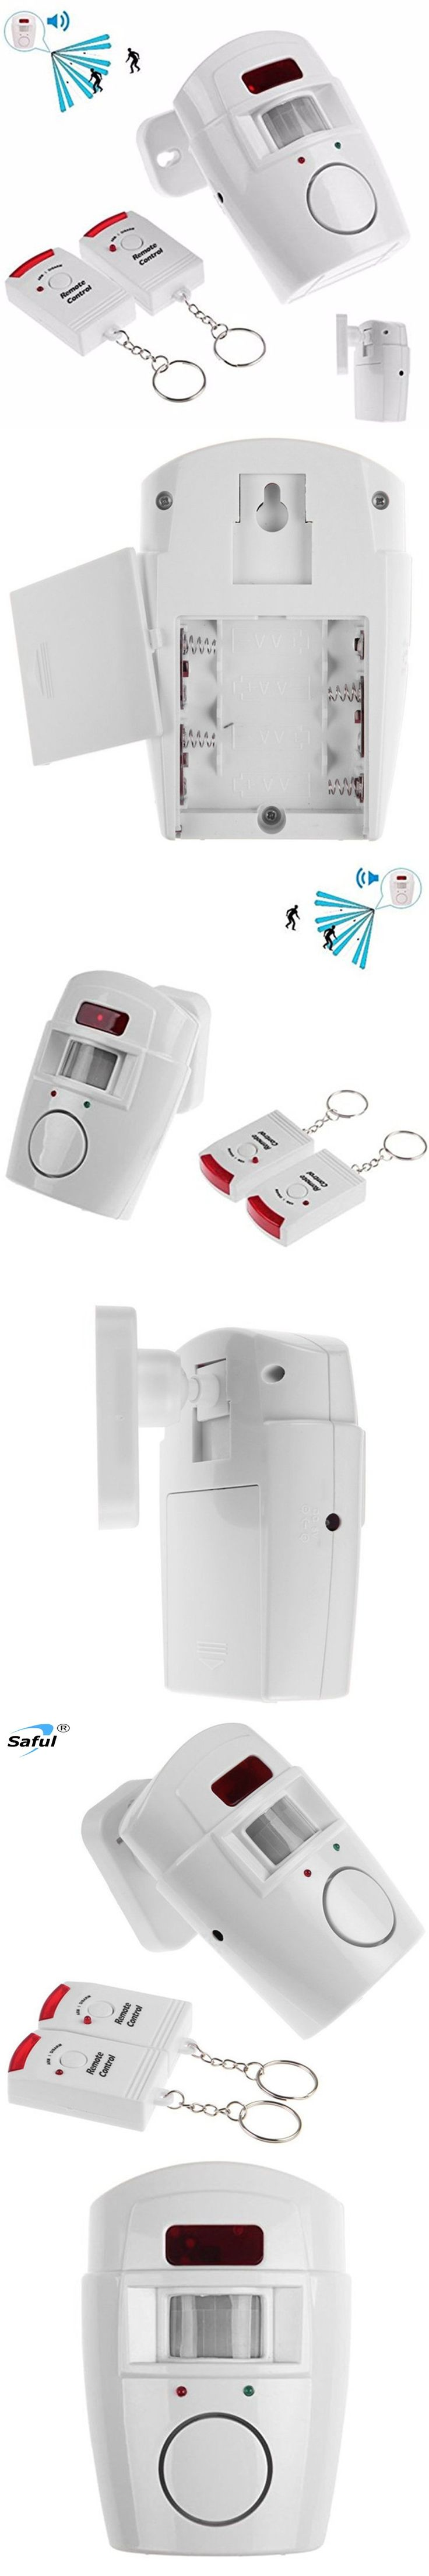 Home System IR Infrared Motion Sensor Alarm Security Detector 105dB Alarm Monitor Wireless Alarm system+2 remote controllers